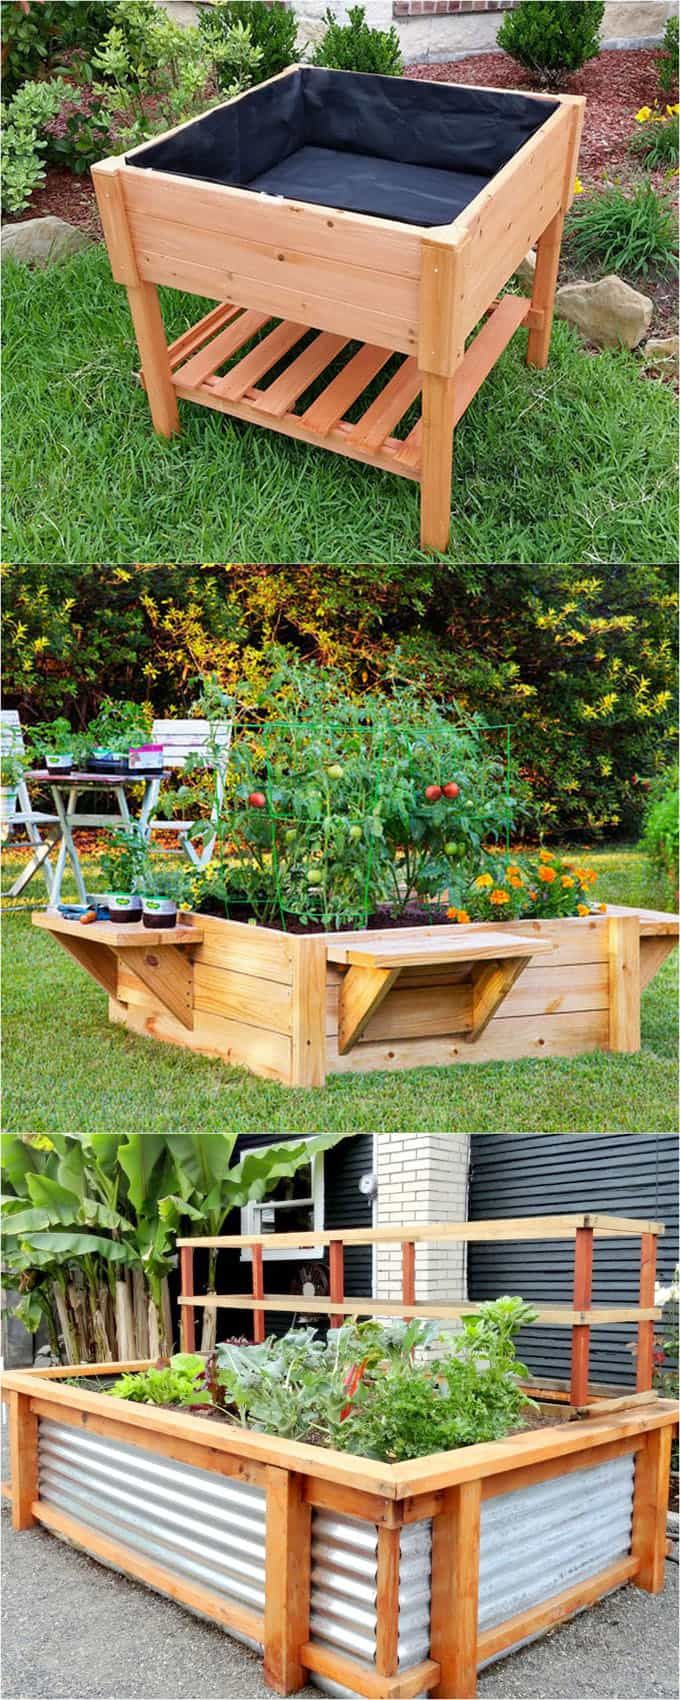 10 Inexpensive Raised Garden Bed Ideas, Most Elegant as well as Attractive #erhöhtegartenbeete